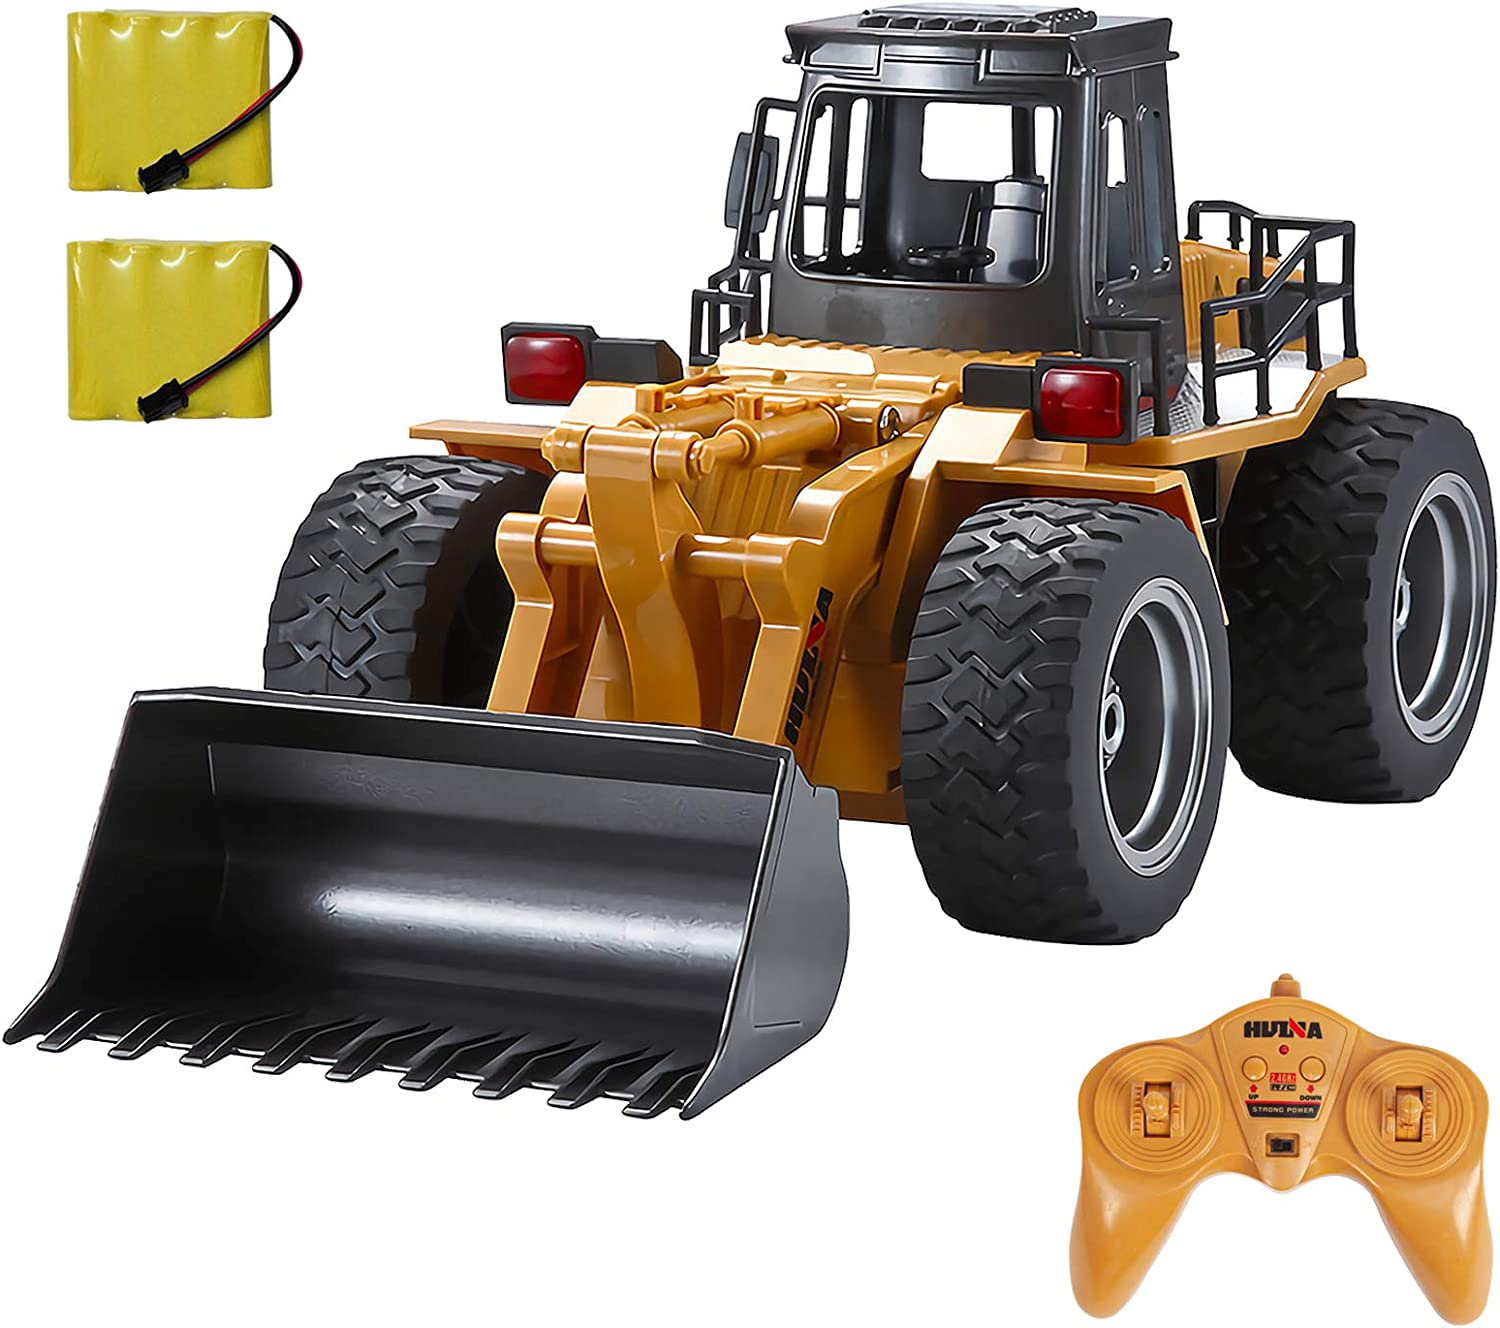 TEMA1985 RC quality assurance Truck 6 Channel Full Functional Front Rem 2021new shipping free shipping 4WD Loader